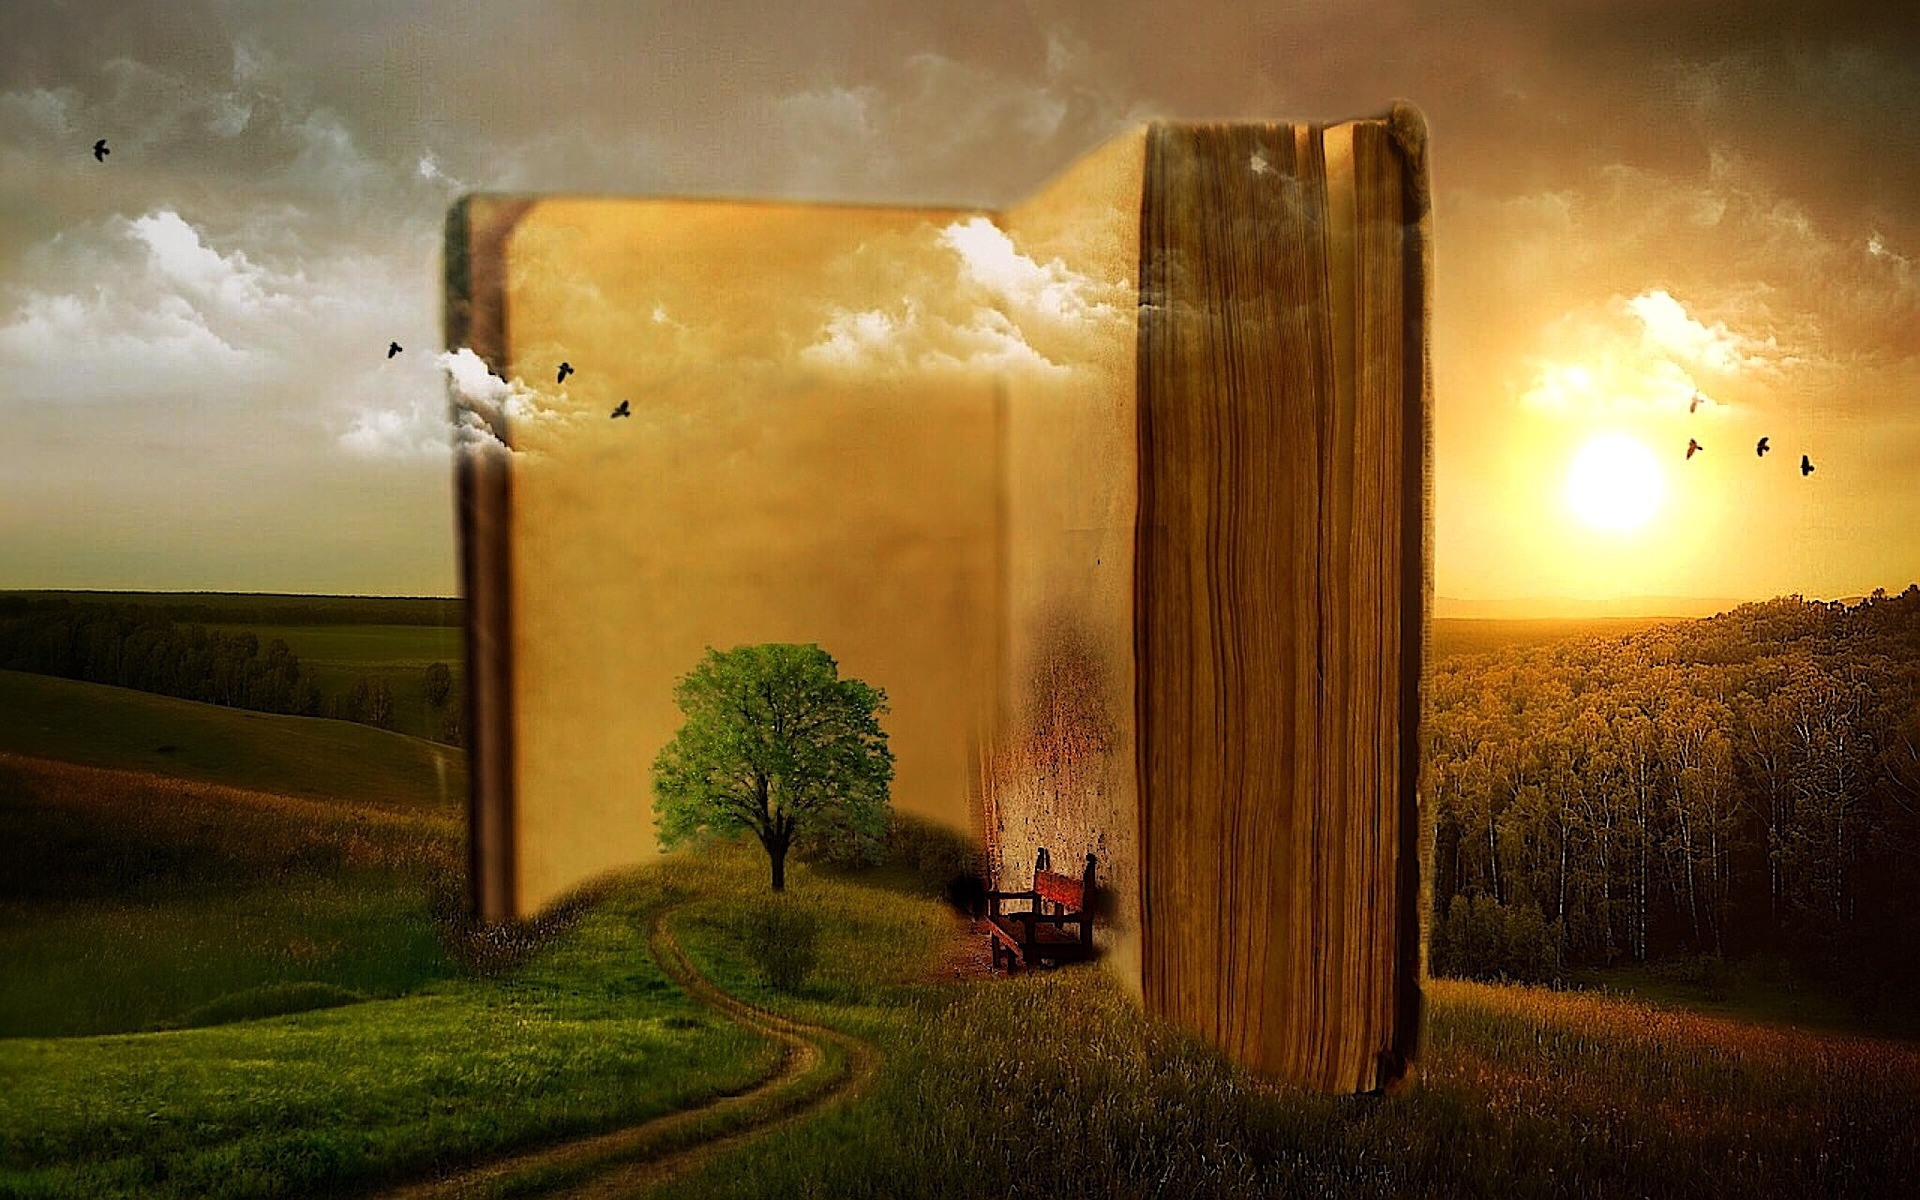 A good story opens doorways to new lives